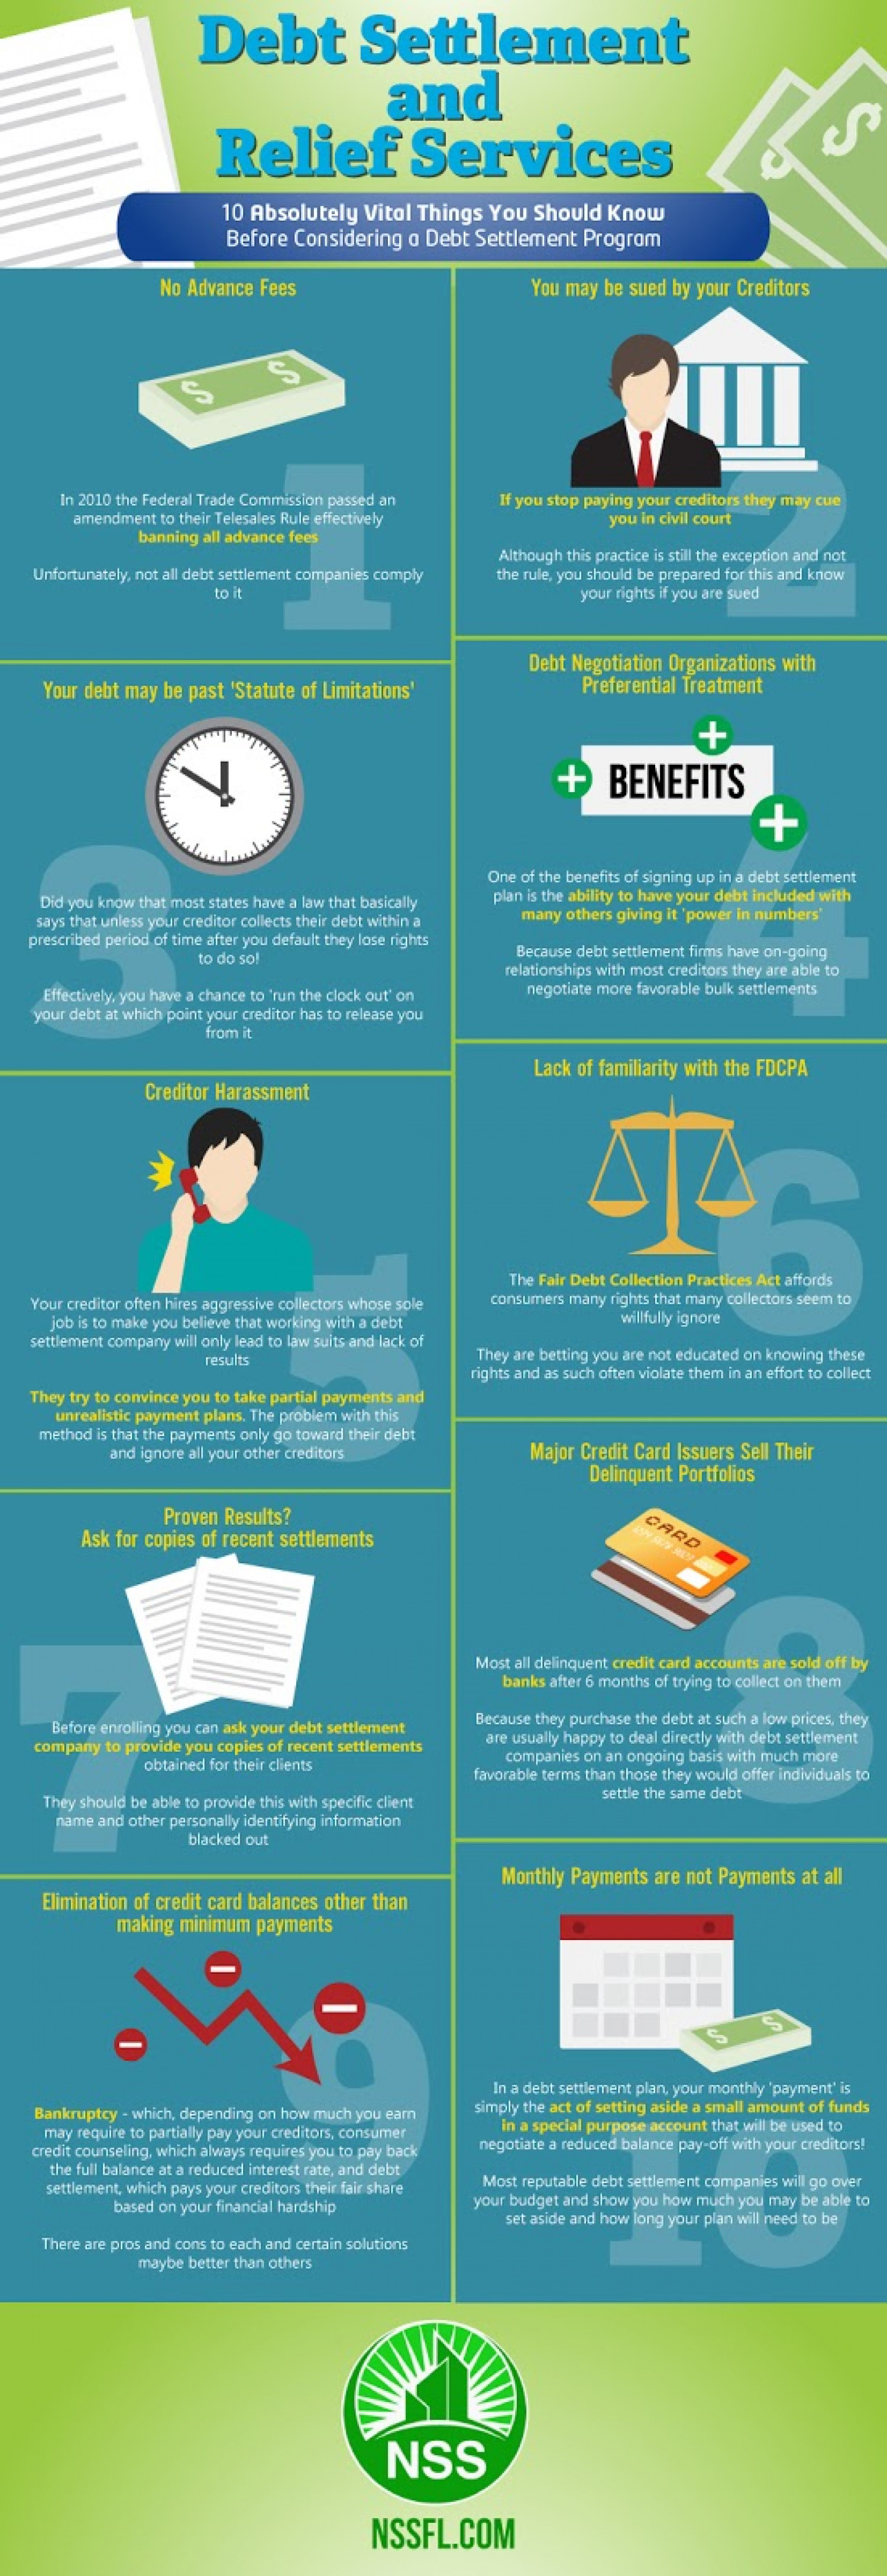 10 Absolutely Vital Things You Should Know Before Considering A Debt Settlement Program Infographic